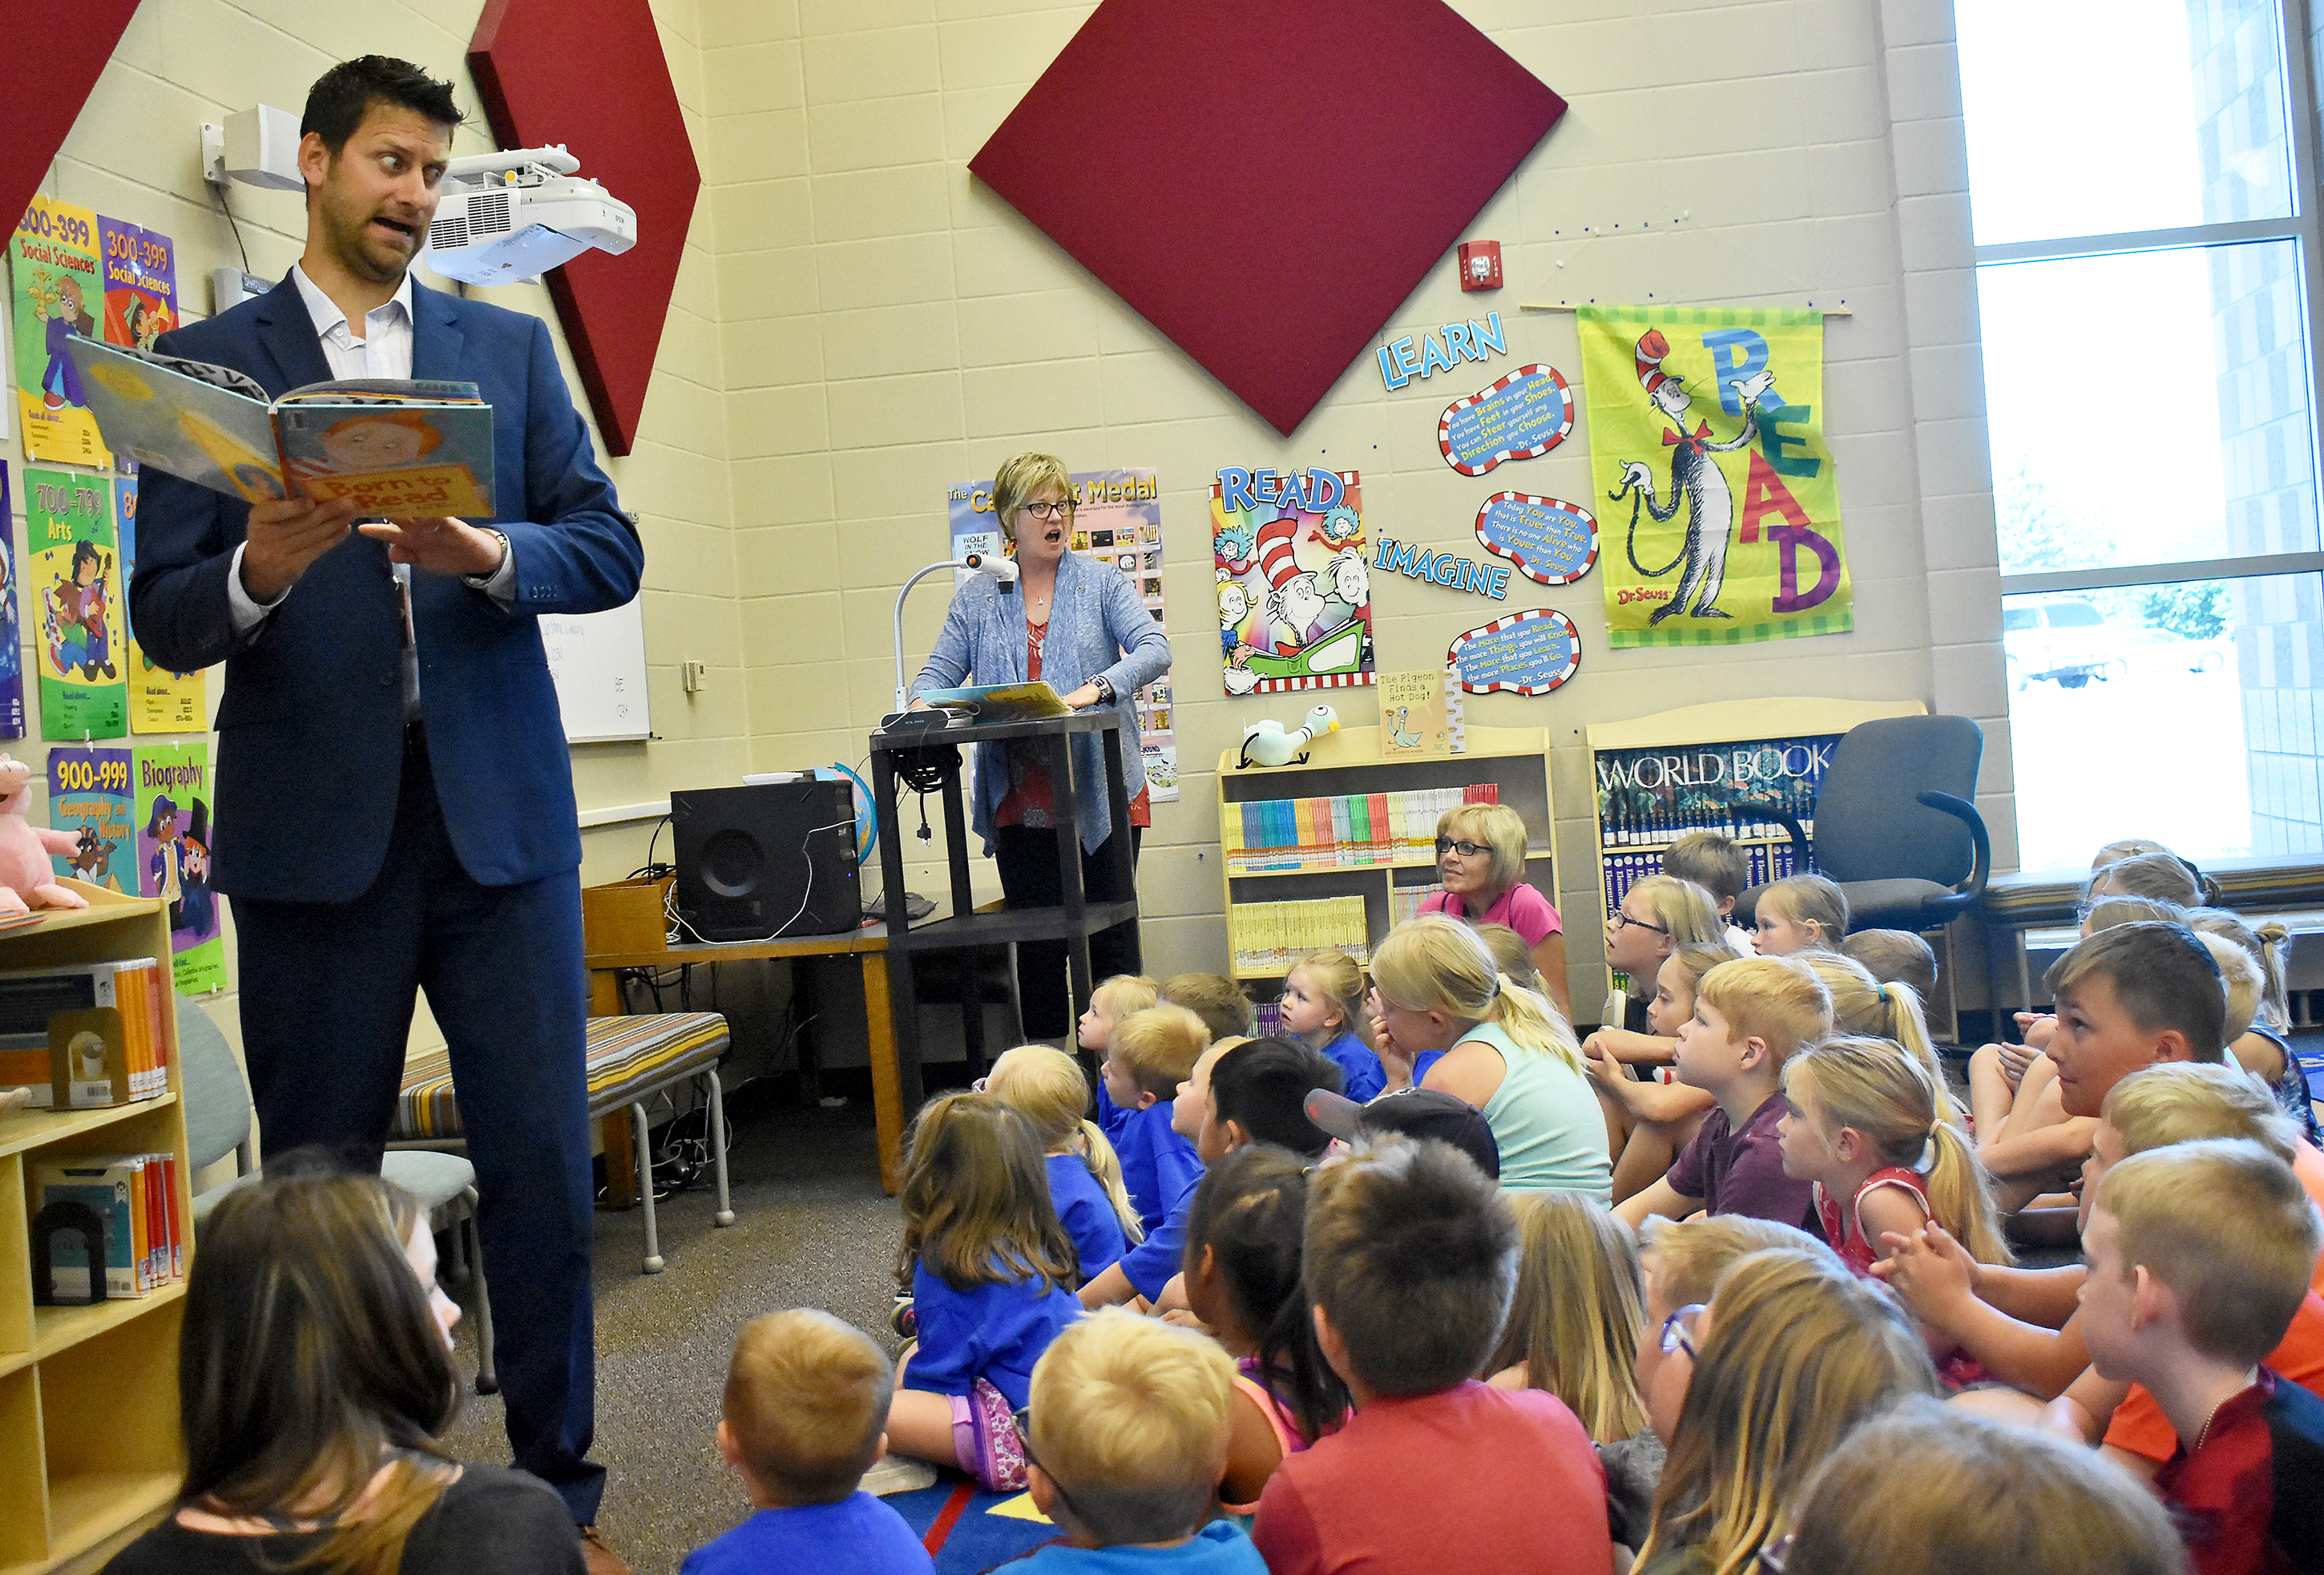 "Brandon Valley superintendent Dr. Jarod Larson delivers an animated page-through of <i>Born to Read</i> by Judy Sierra on June 6, kicking off a series of Wednesday story times in conjunction with the summer lunch program at Brandon Elementary.<span class=""Apple-converted-space""> </span>Story times will be 10:30 a.m. and 11:30 a.m. Wednesdays in the Brandon Elementary library. Kids 18 years old and under eat free from 11 a.m. to 12:30 p.m. weekdays through July 27, and lunch is $4 for adults. <strong>Jamie Hult/BV Journal</strong>*/"